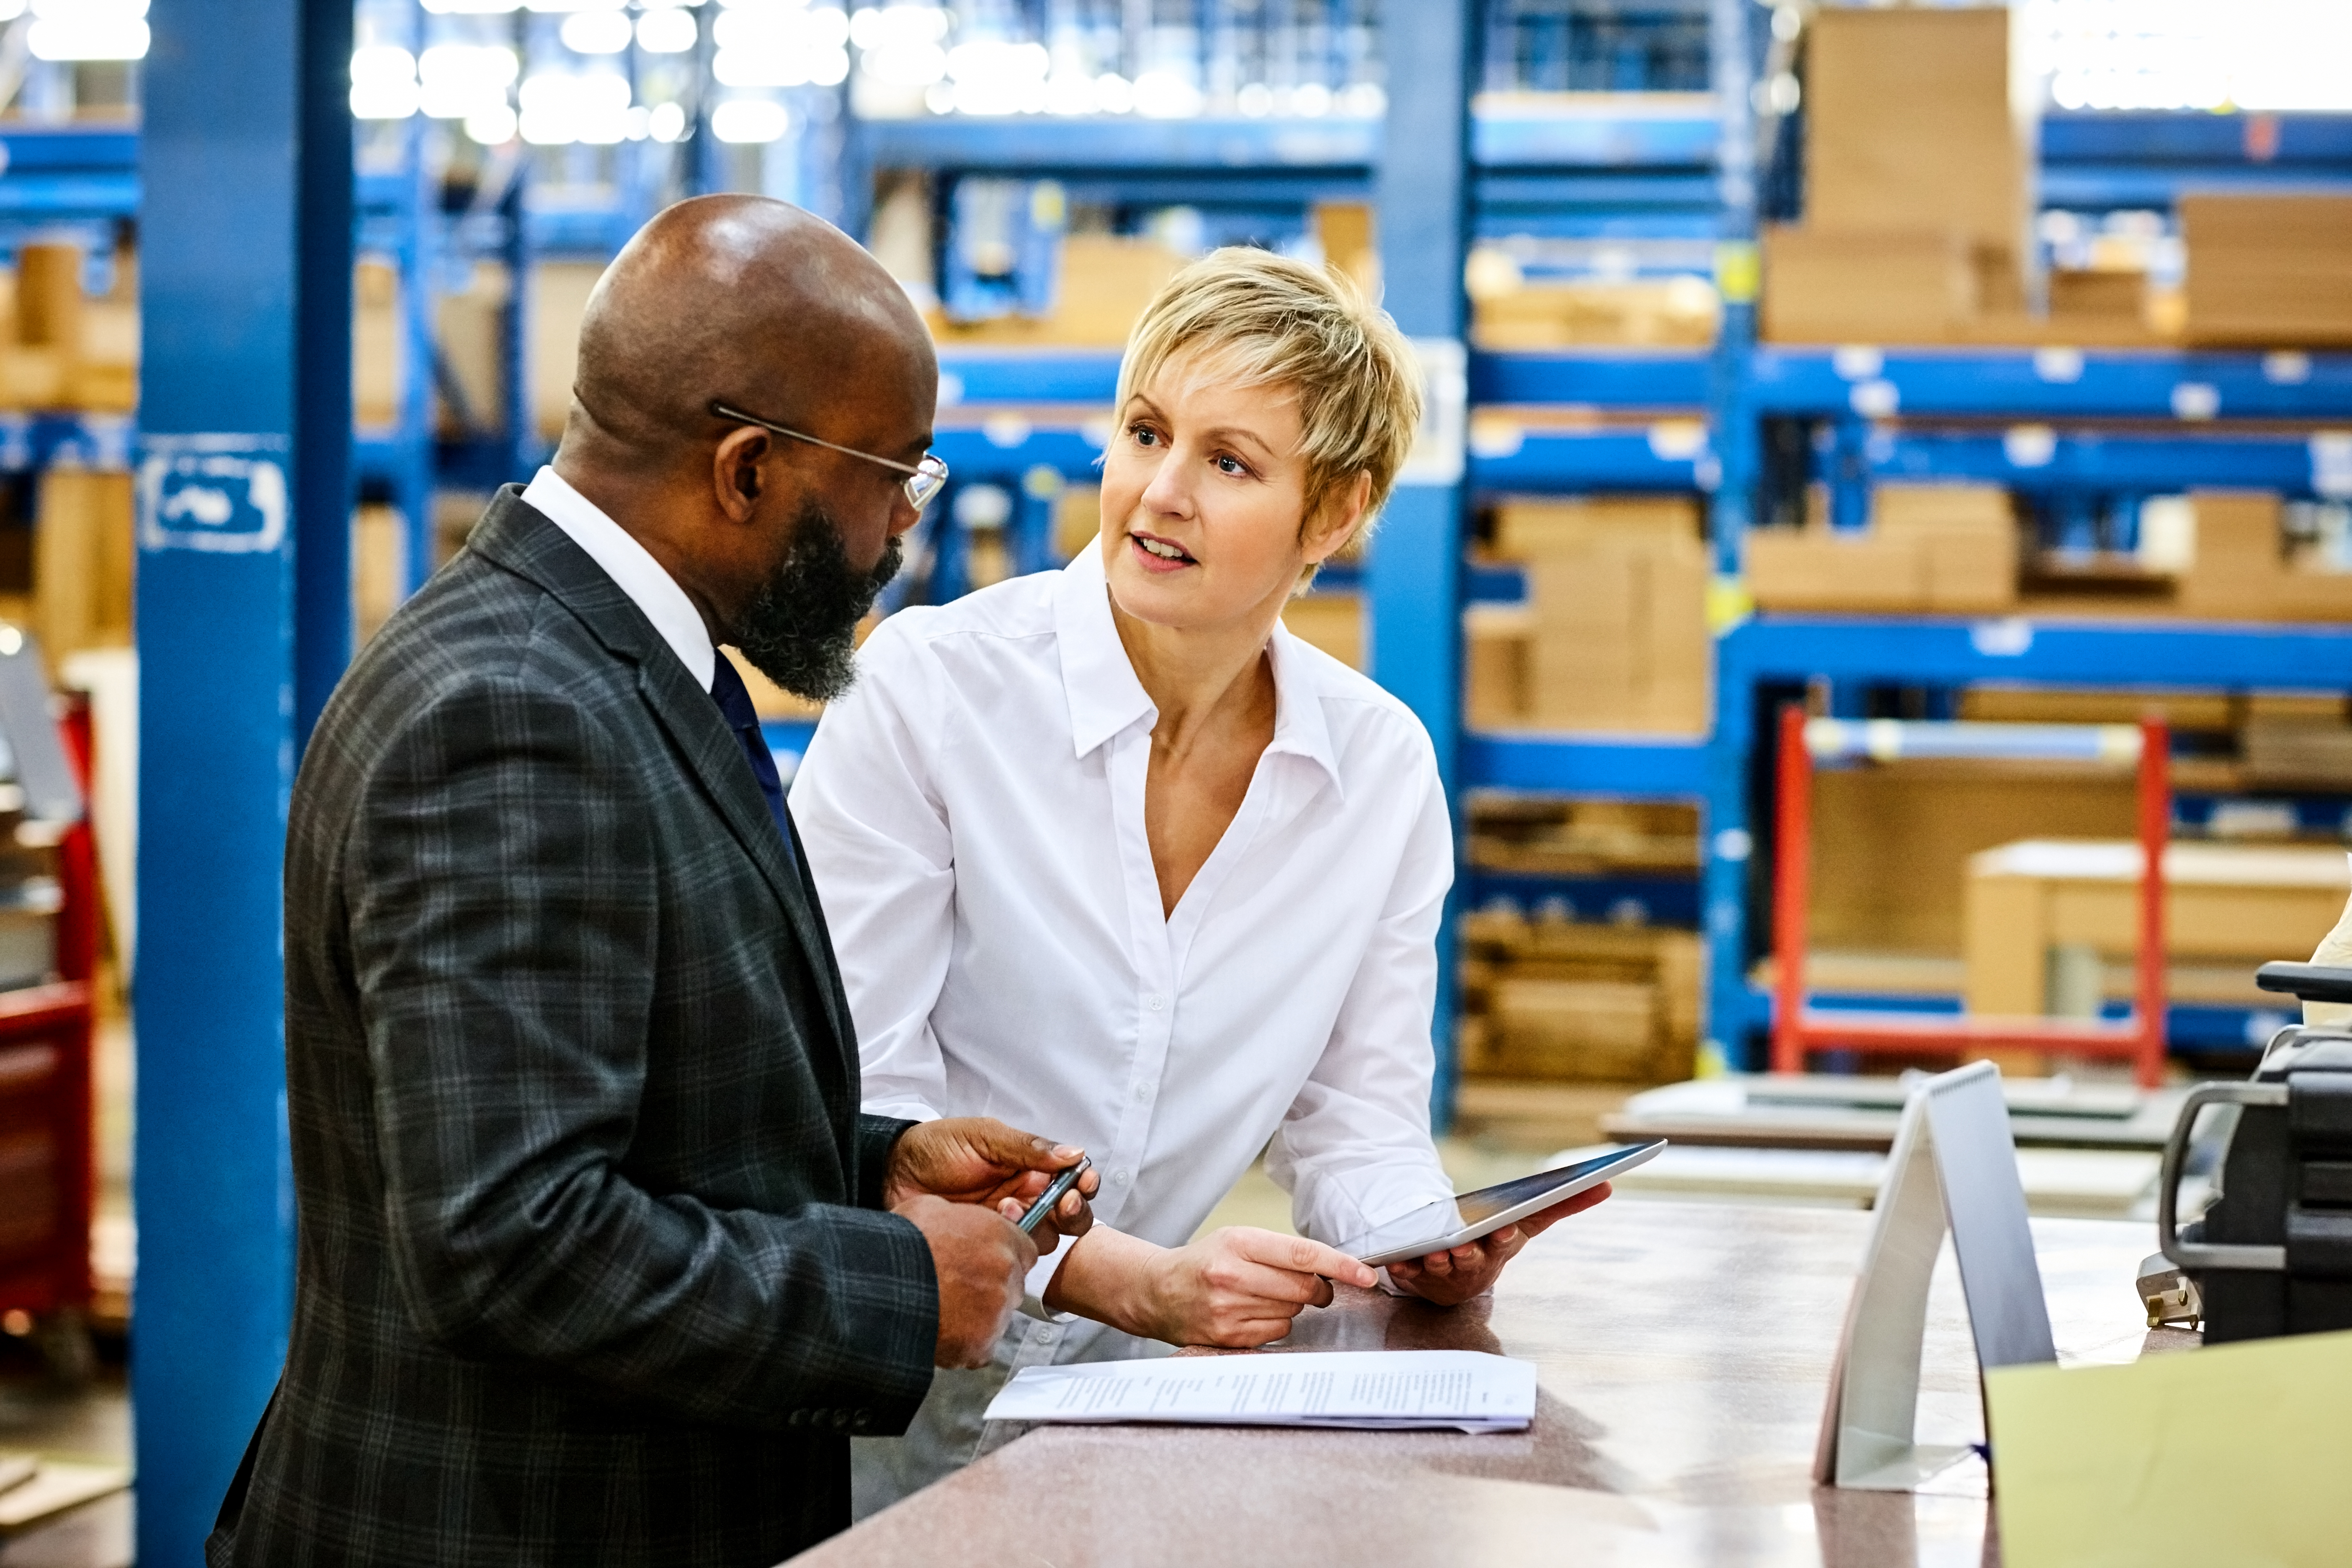 How to shift inventory based on shifts in consumer demand